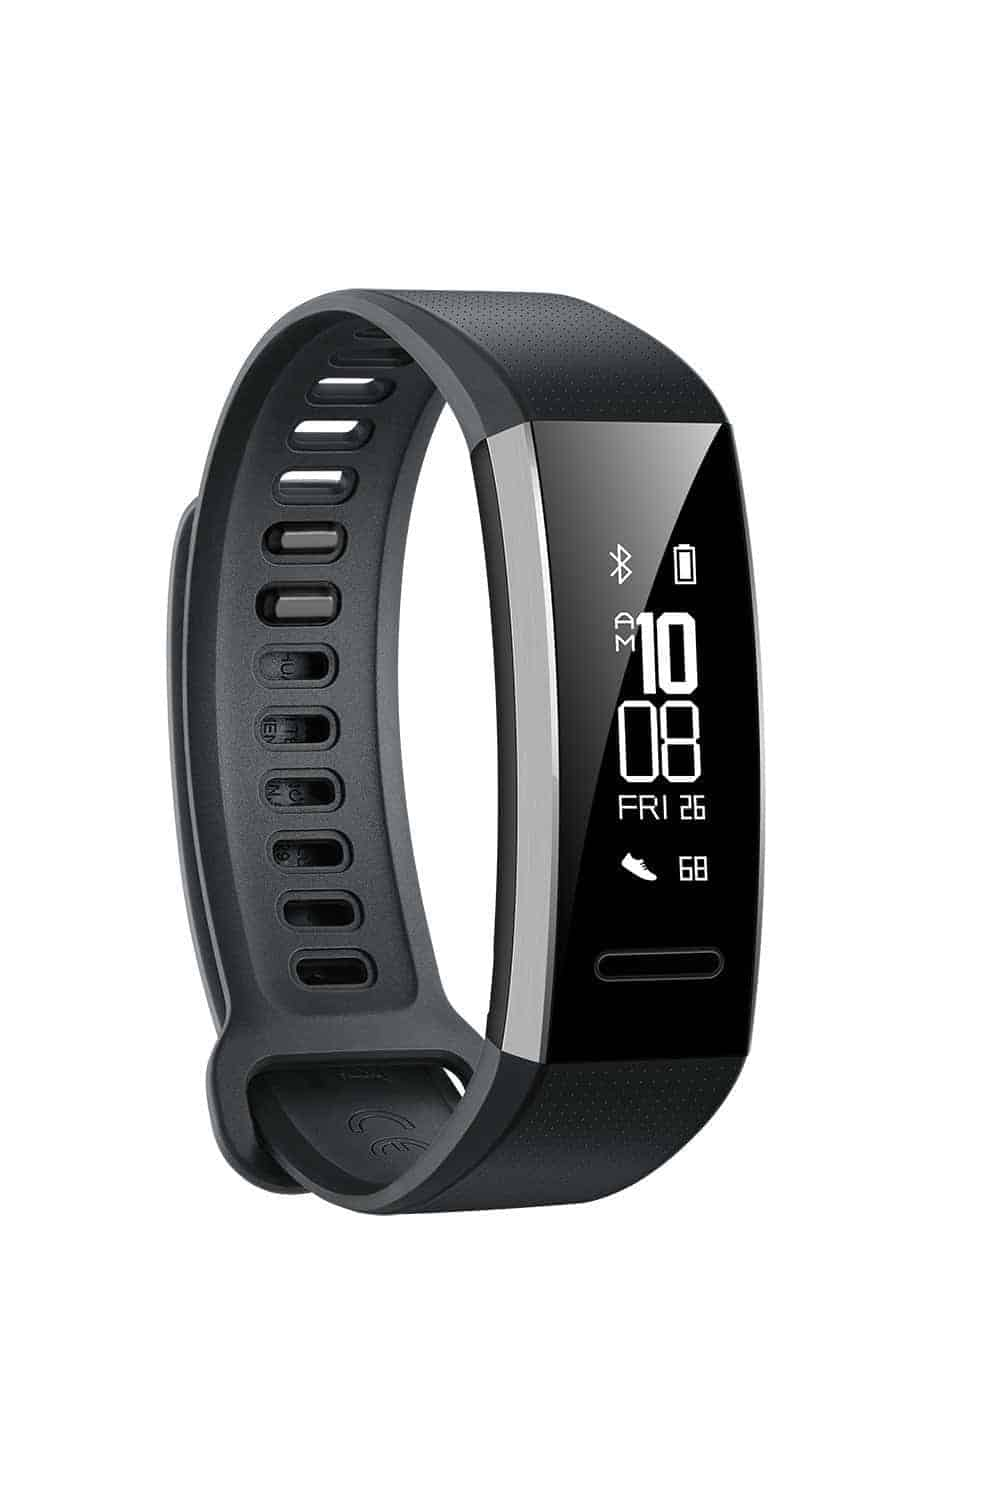 huawei band 3. huawei\u0027s new product is a direct successor to the original band, having been announced in july alongside visually identical band 2. huawei 3